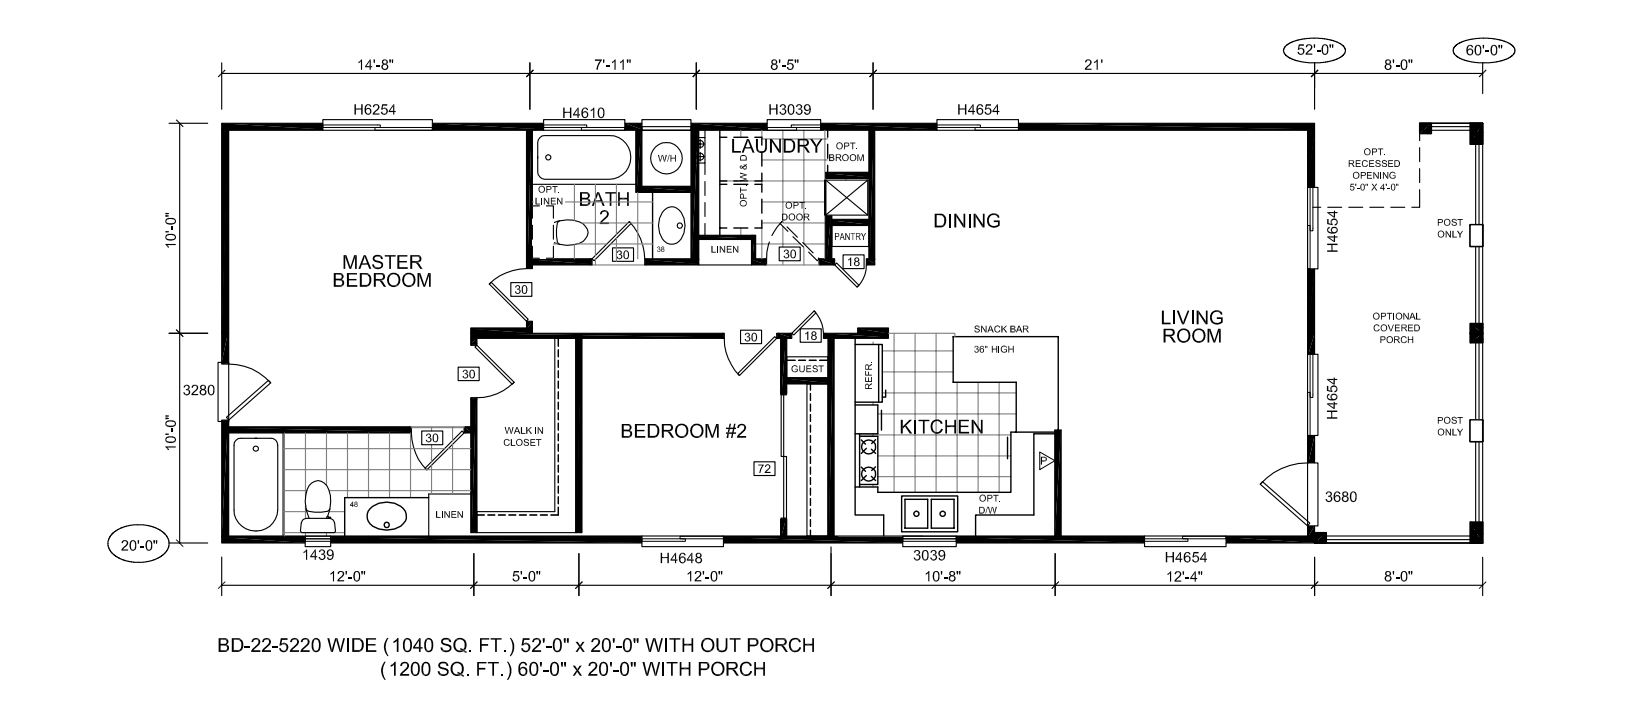 Modular Homes Floor Plans And Prices >> BD-22 20 - Ma Williams Manufactured Homes, Manufactured ...